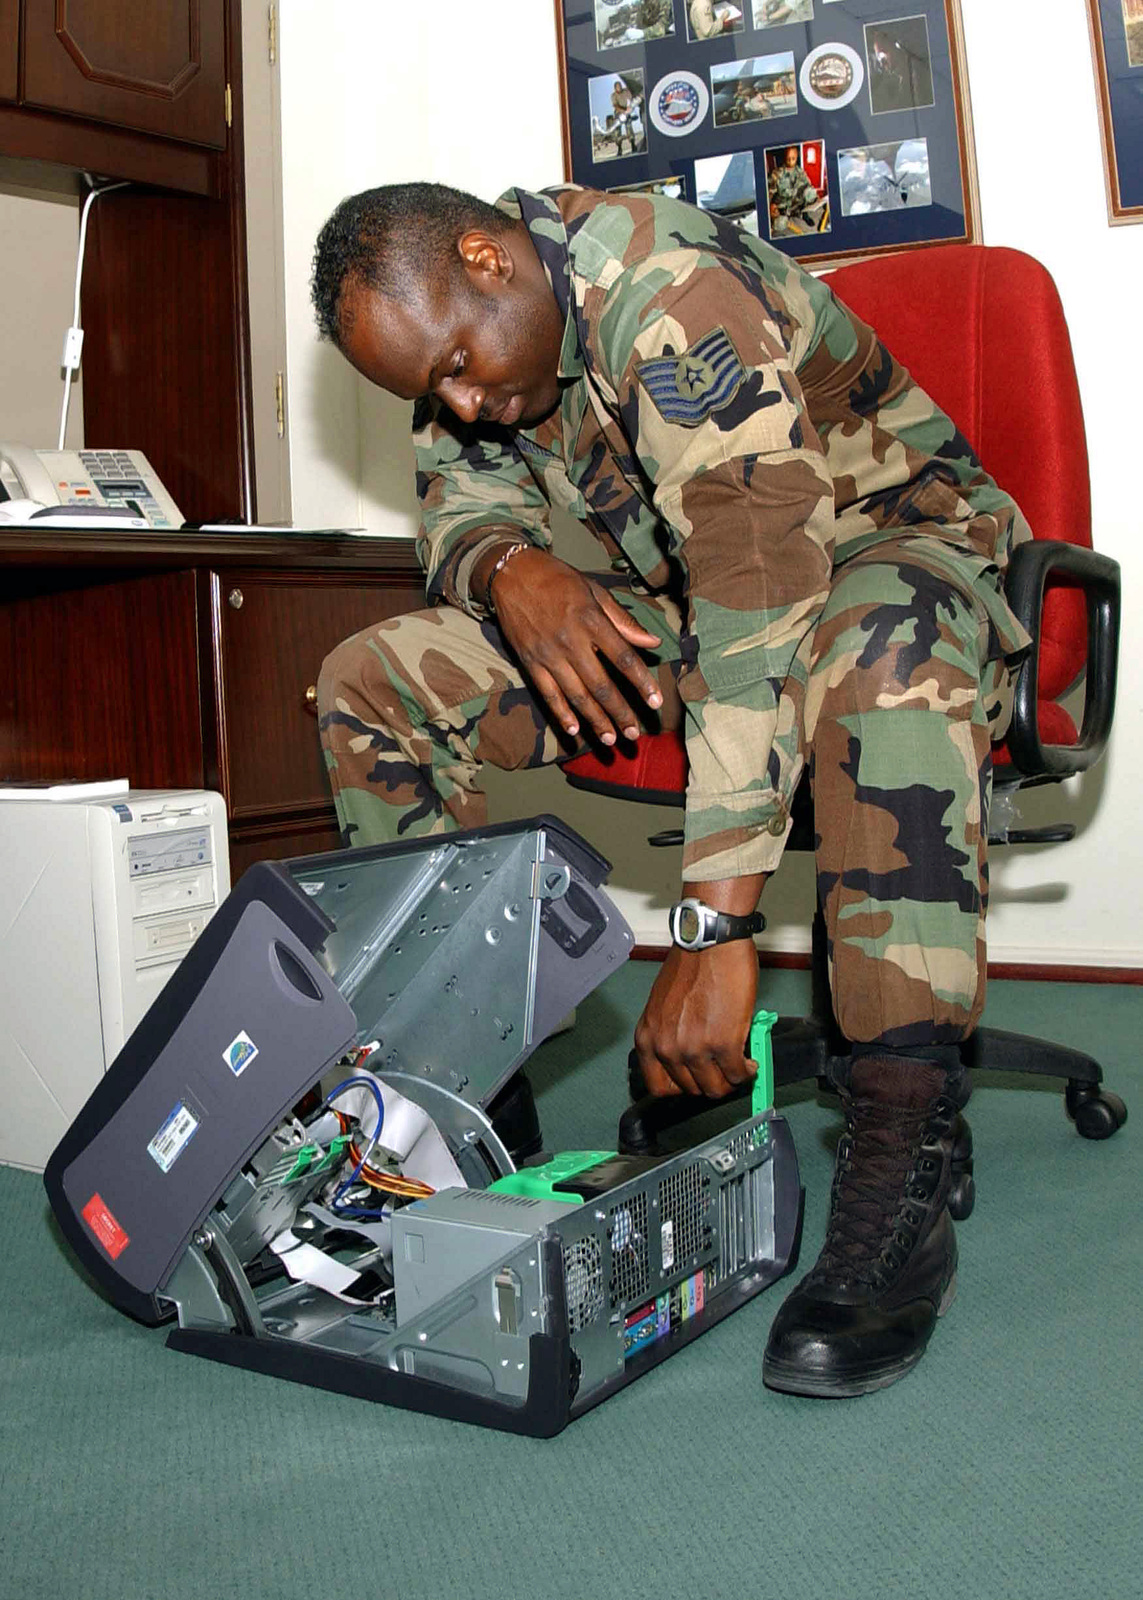 US Air Force (USAF) MASTER Sergeant (MSGT) Greg Van Buren, Communication Directorate, Combined Task Force (CTF) Headquarters, Incirlik Air Base (AB), Turkey, configures a new computer while deployed in support of Operation NORTHERN WATCH